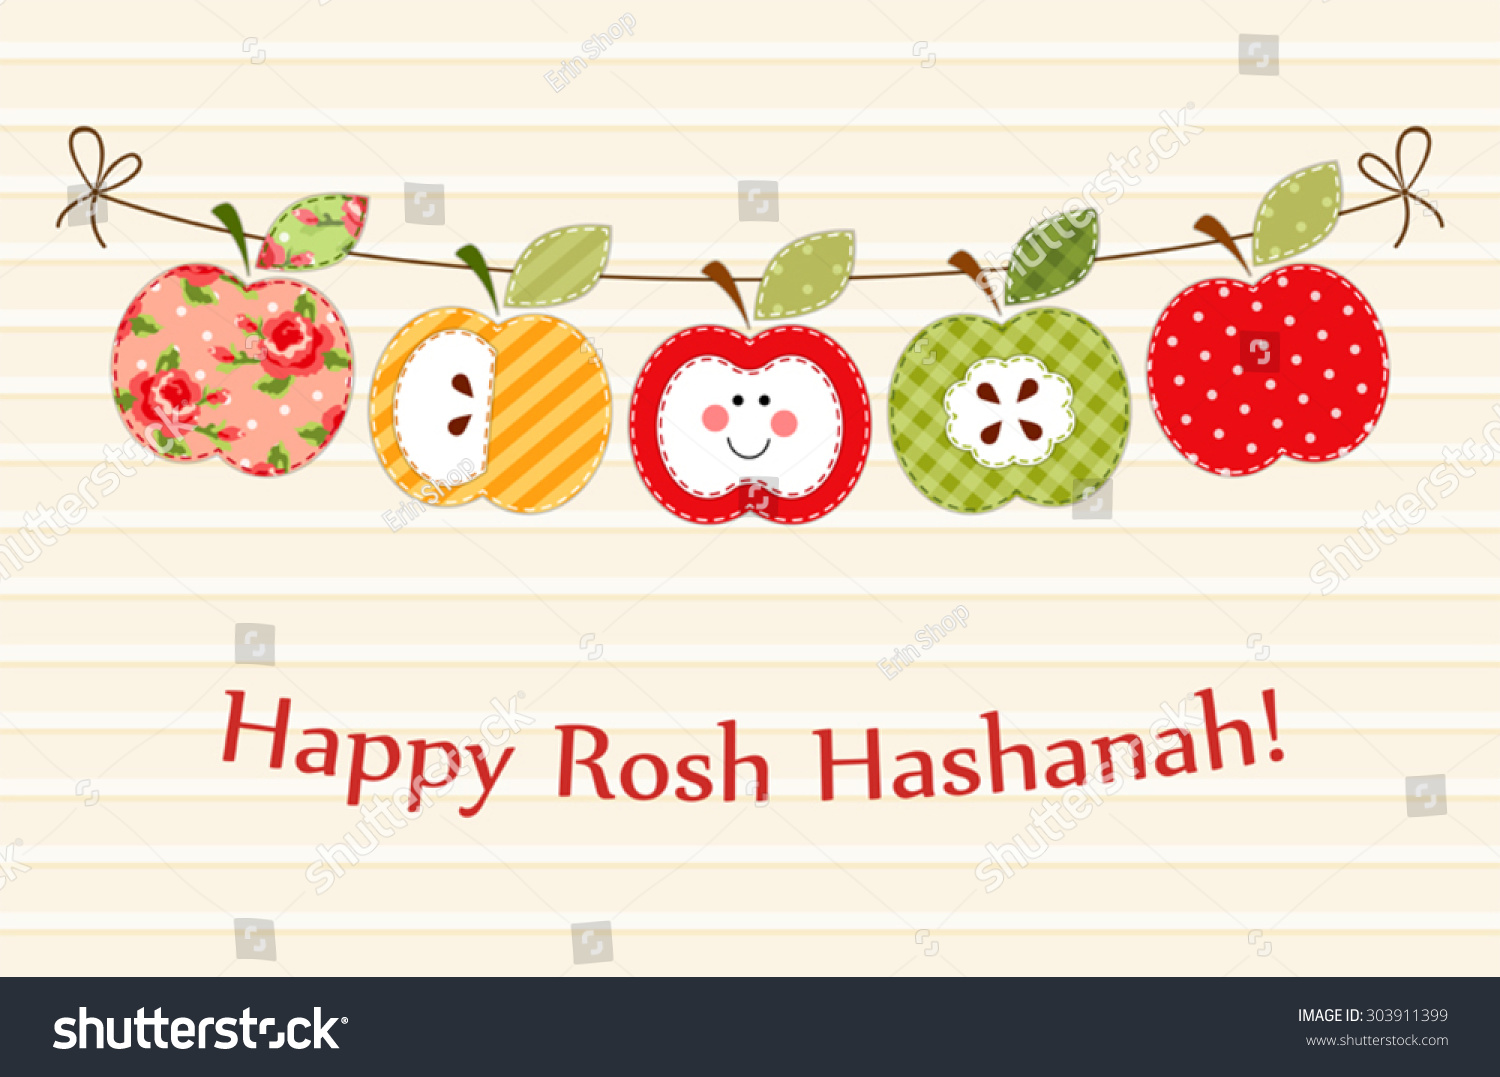 Cute Bright Apples Garland Rosh Hashanah Stock Vector 303911399 ...